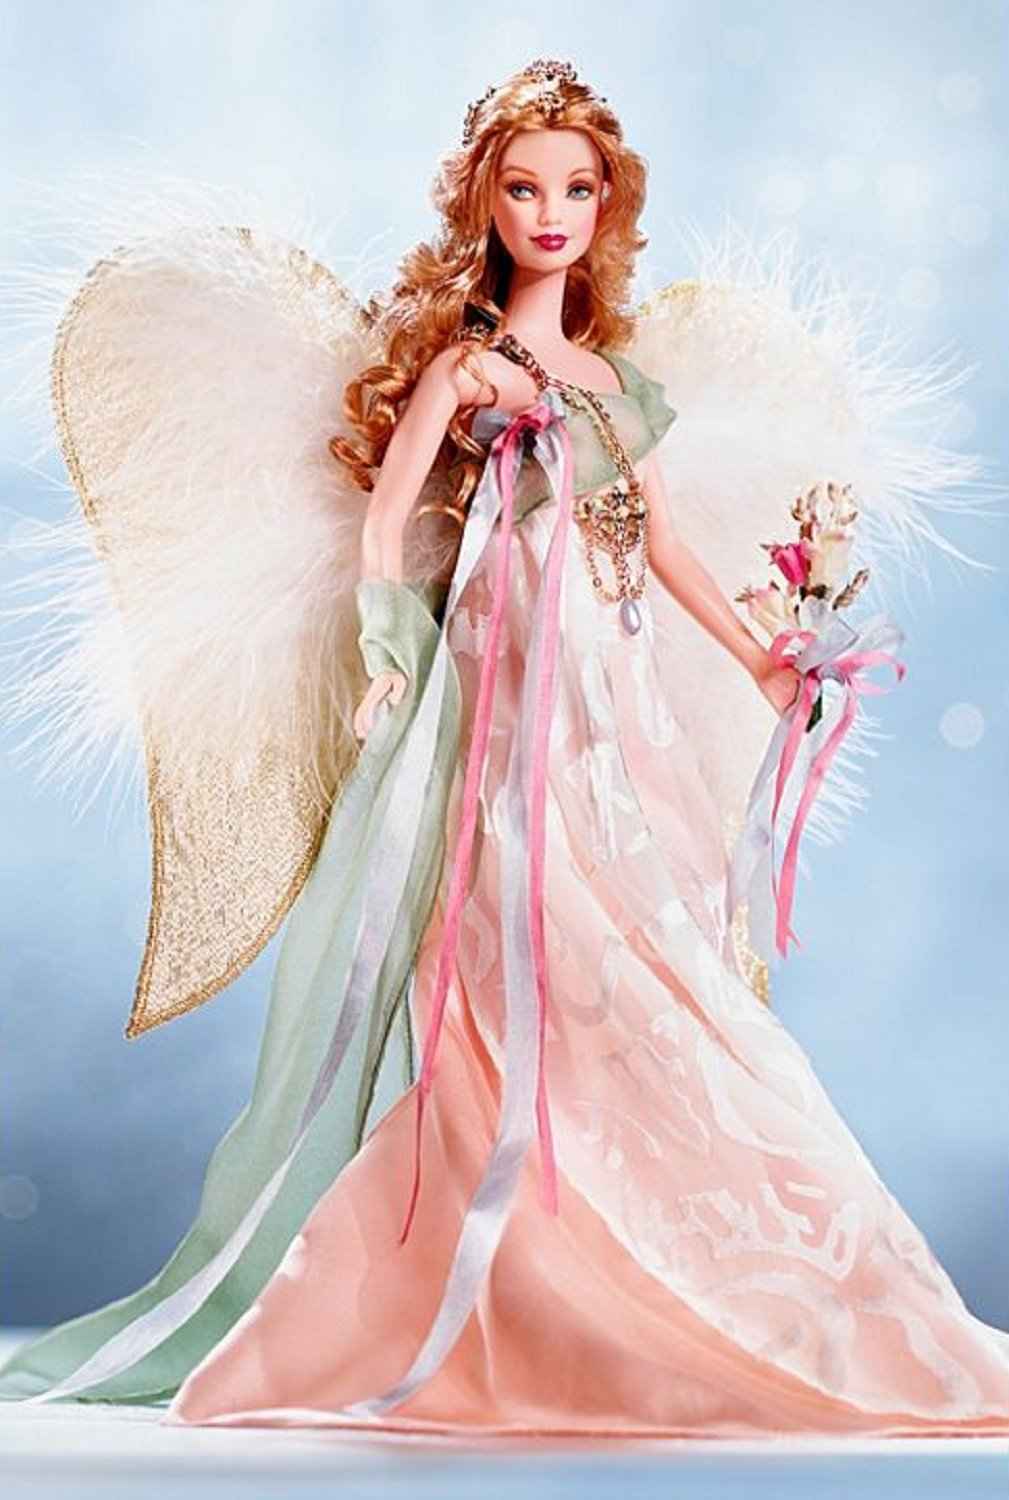 Amazon.com: Barbie Collector Golden Angel Barbie Doll: Toys & Games